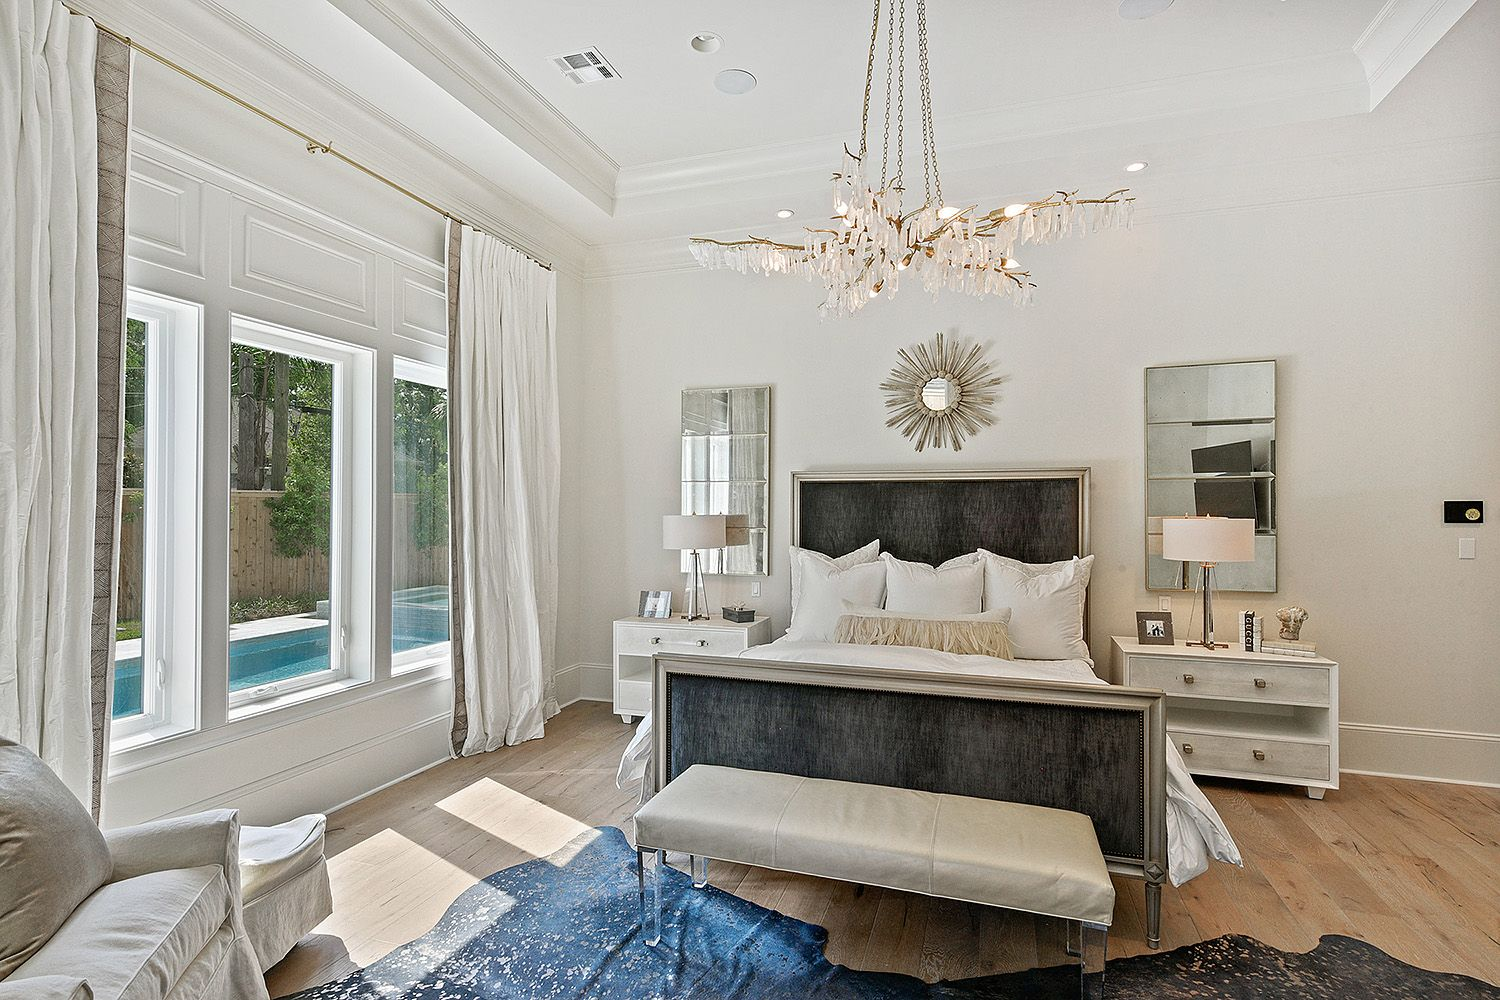 Parade Of Homes 2018 The French Mix By Jennifer Dicerbo Home Parade Of Homes Interior Design